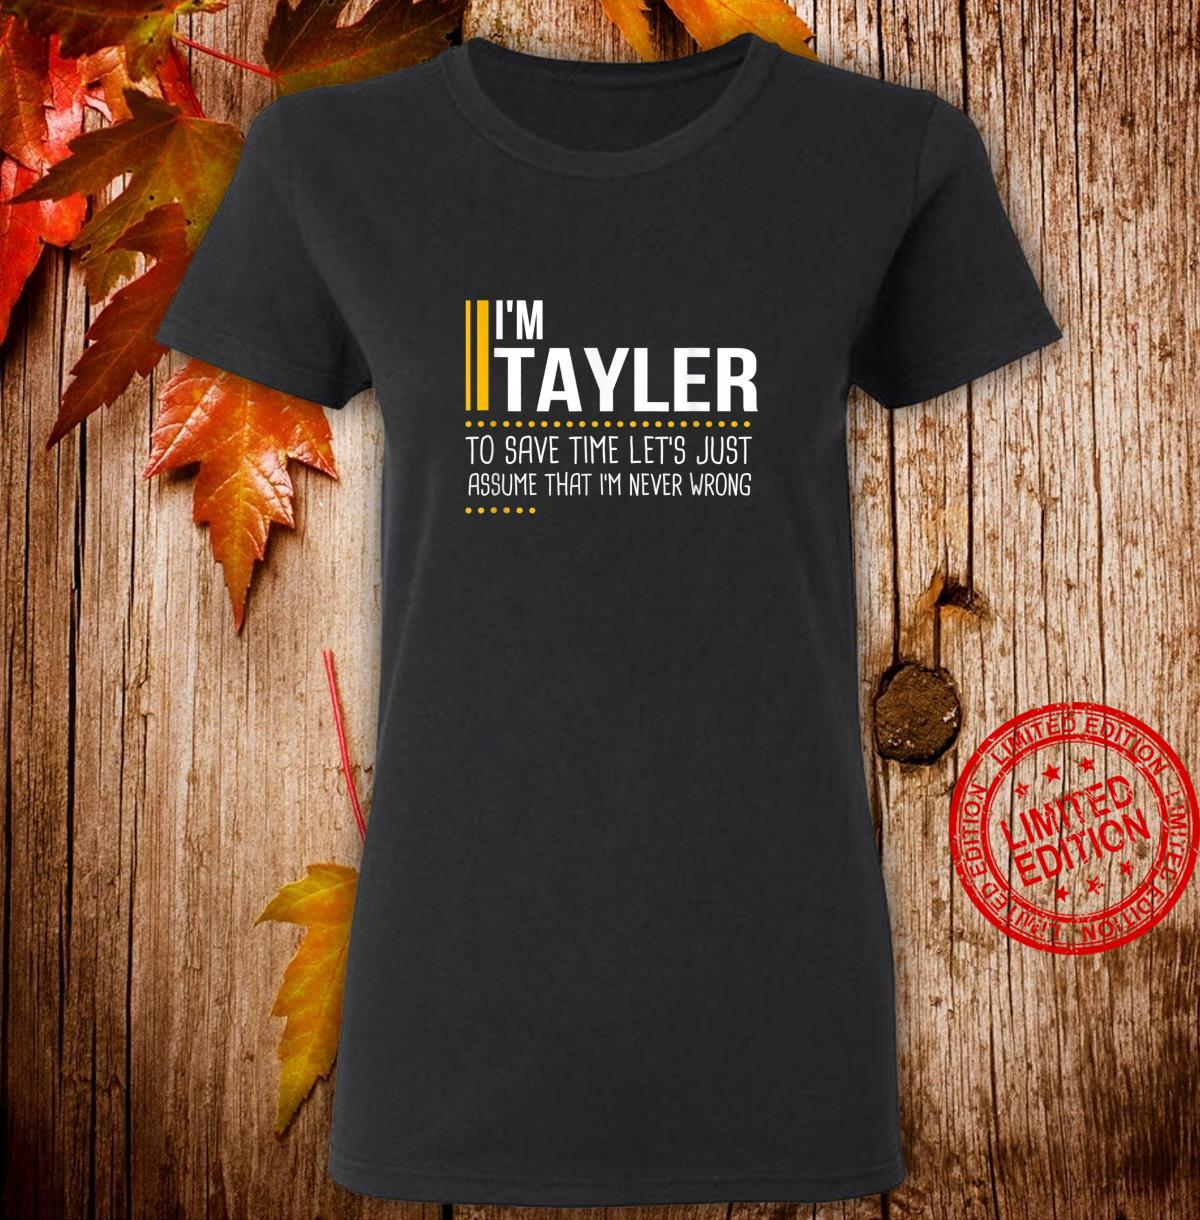 Save Time Lets Assume Tayler Is Never Wrong Name Shirt ladies tee